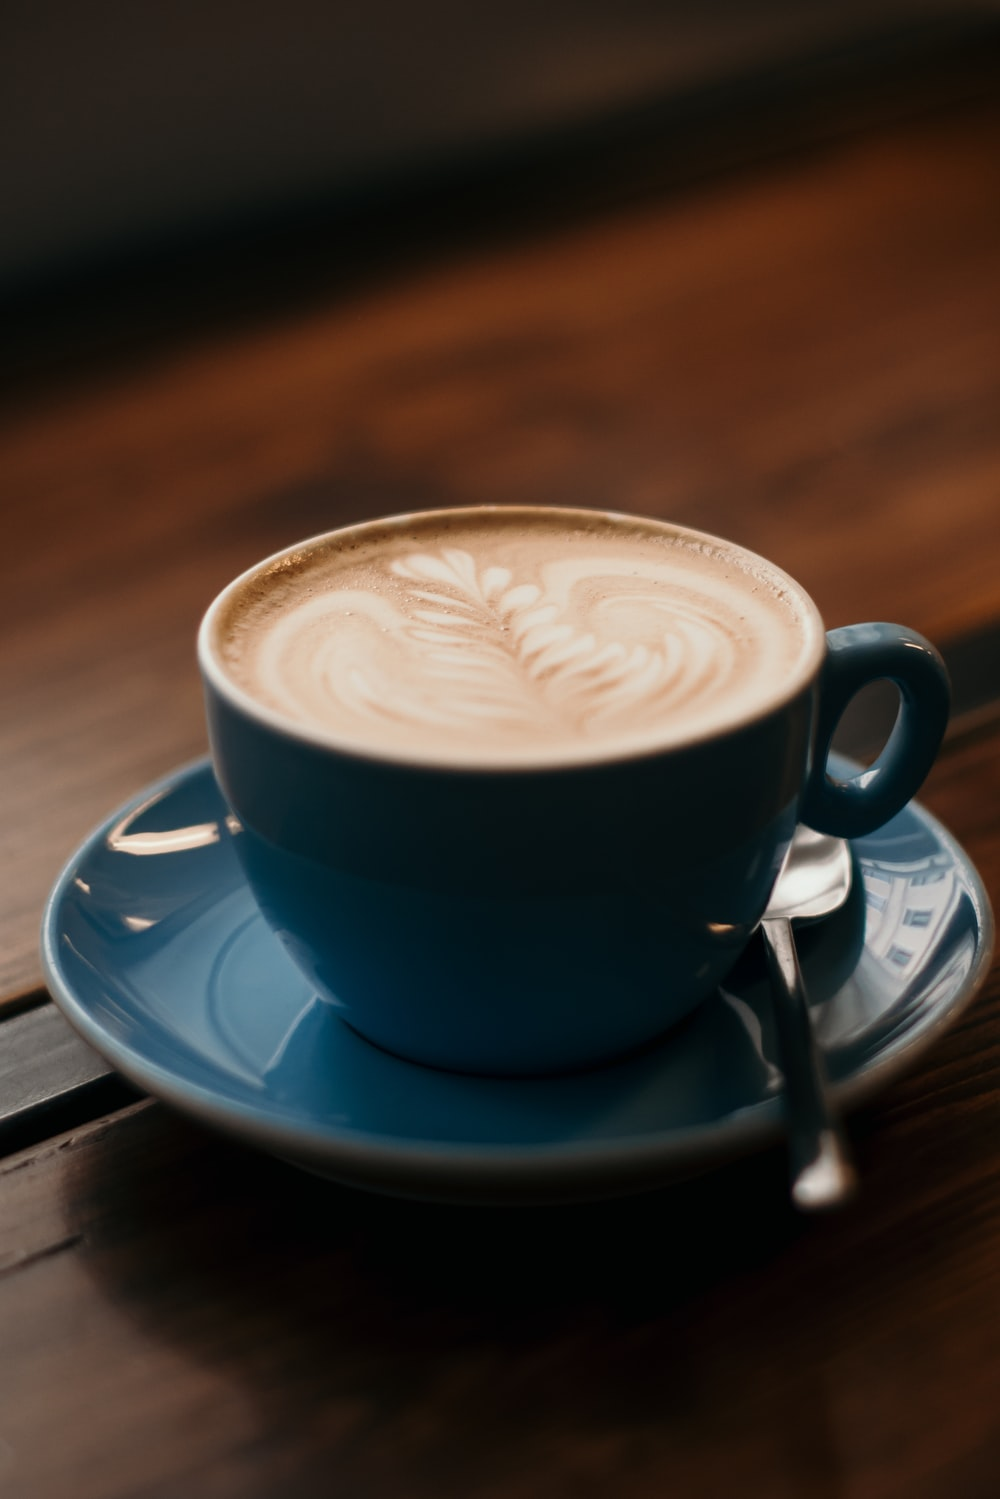 blue ceramic teacup set filled with cappuccino on table